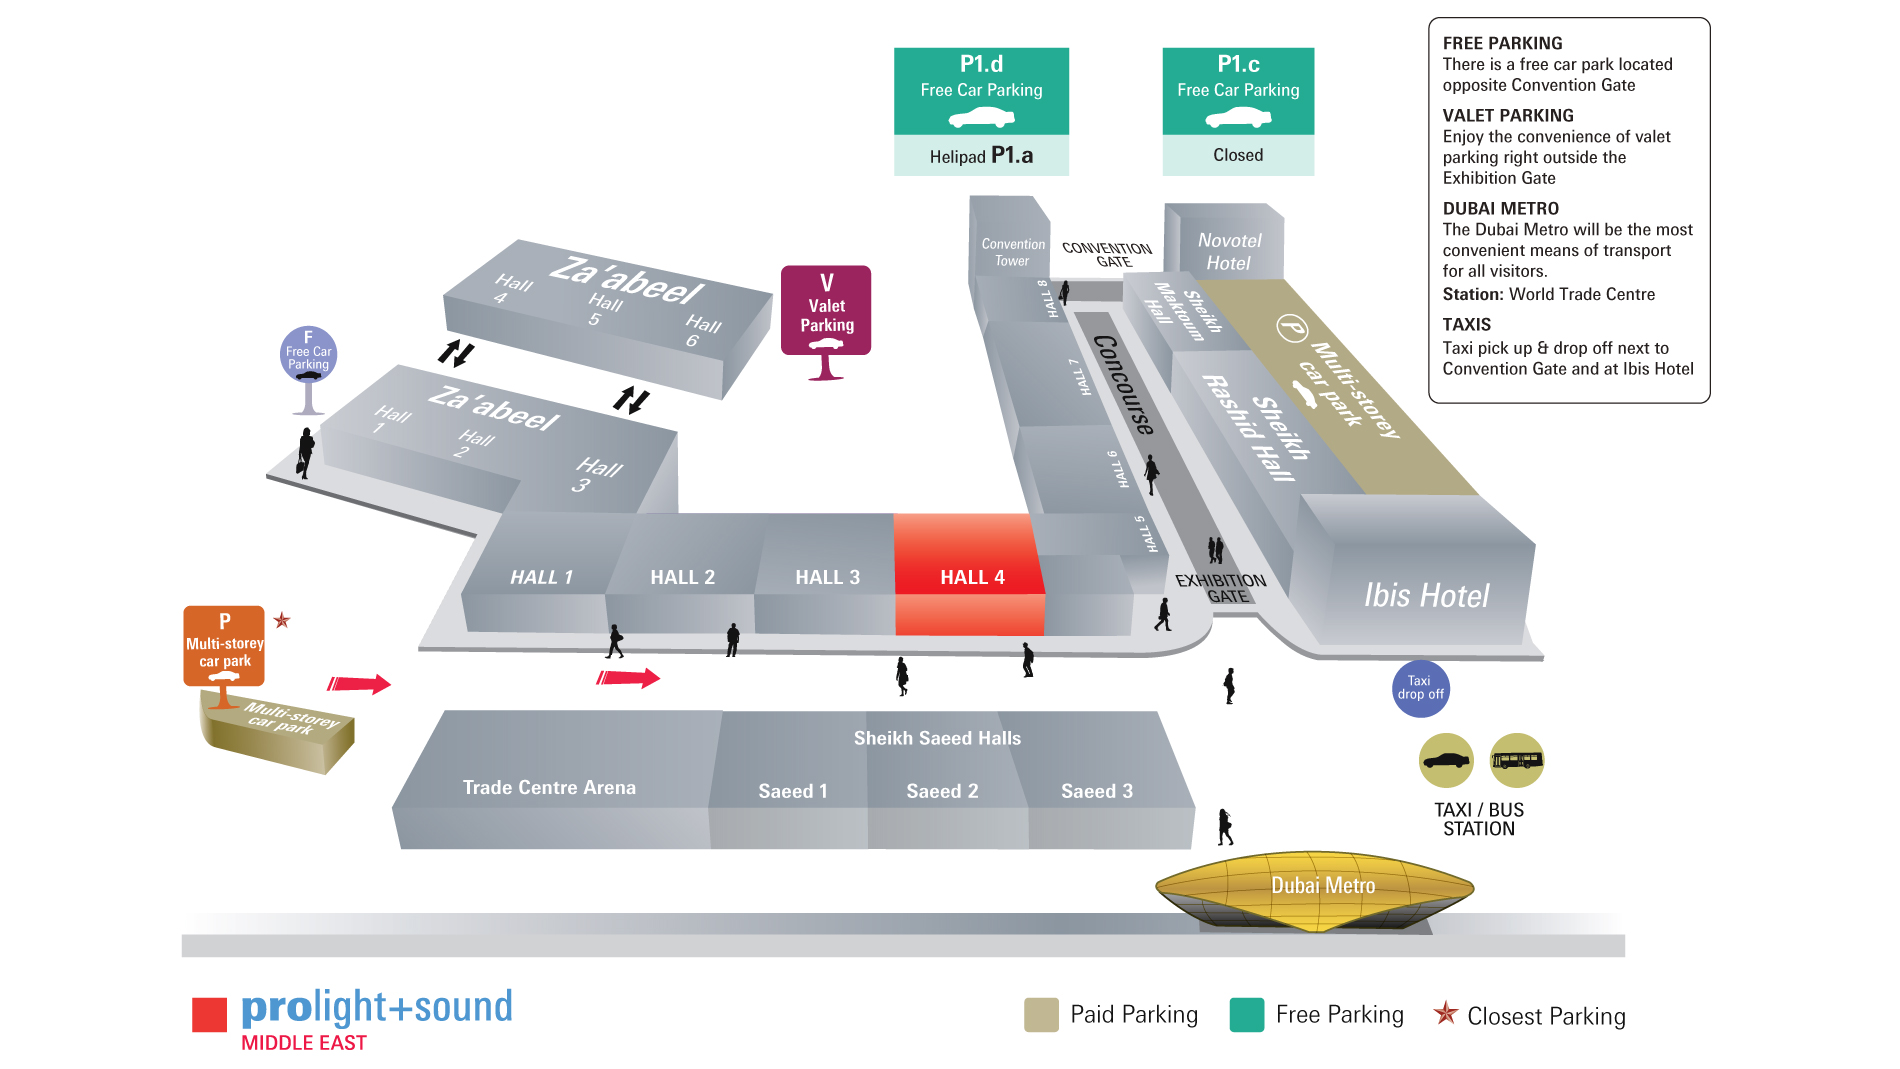 Prolight + Sound Middle East Venue Map